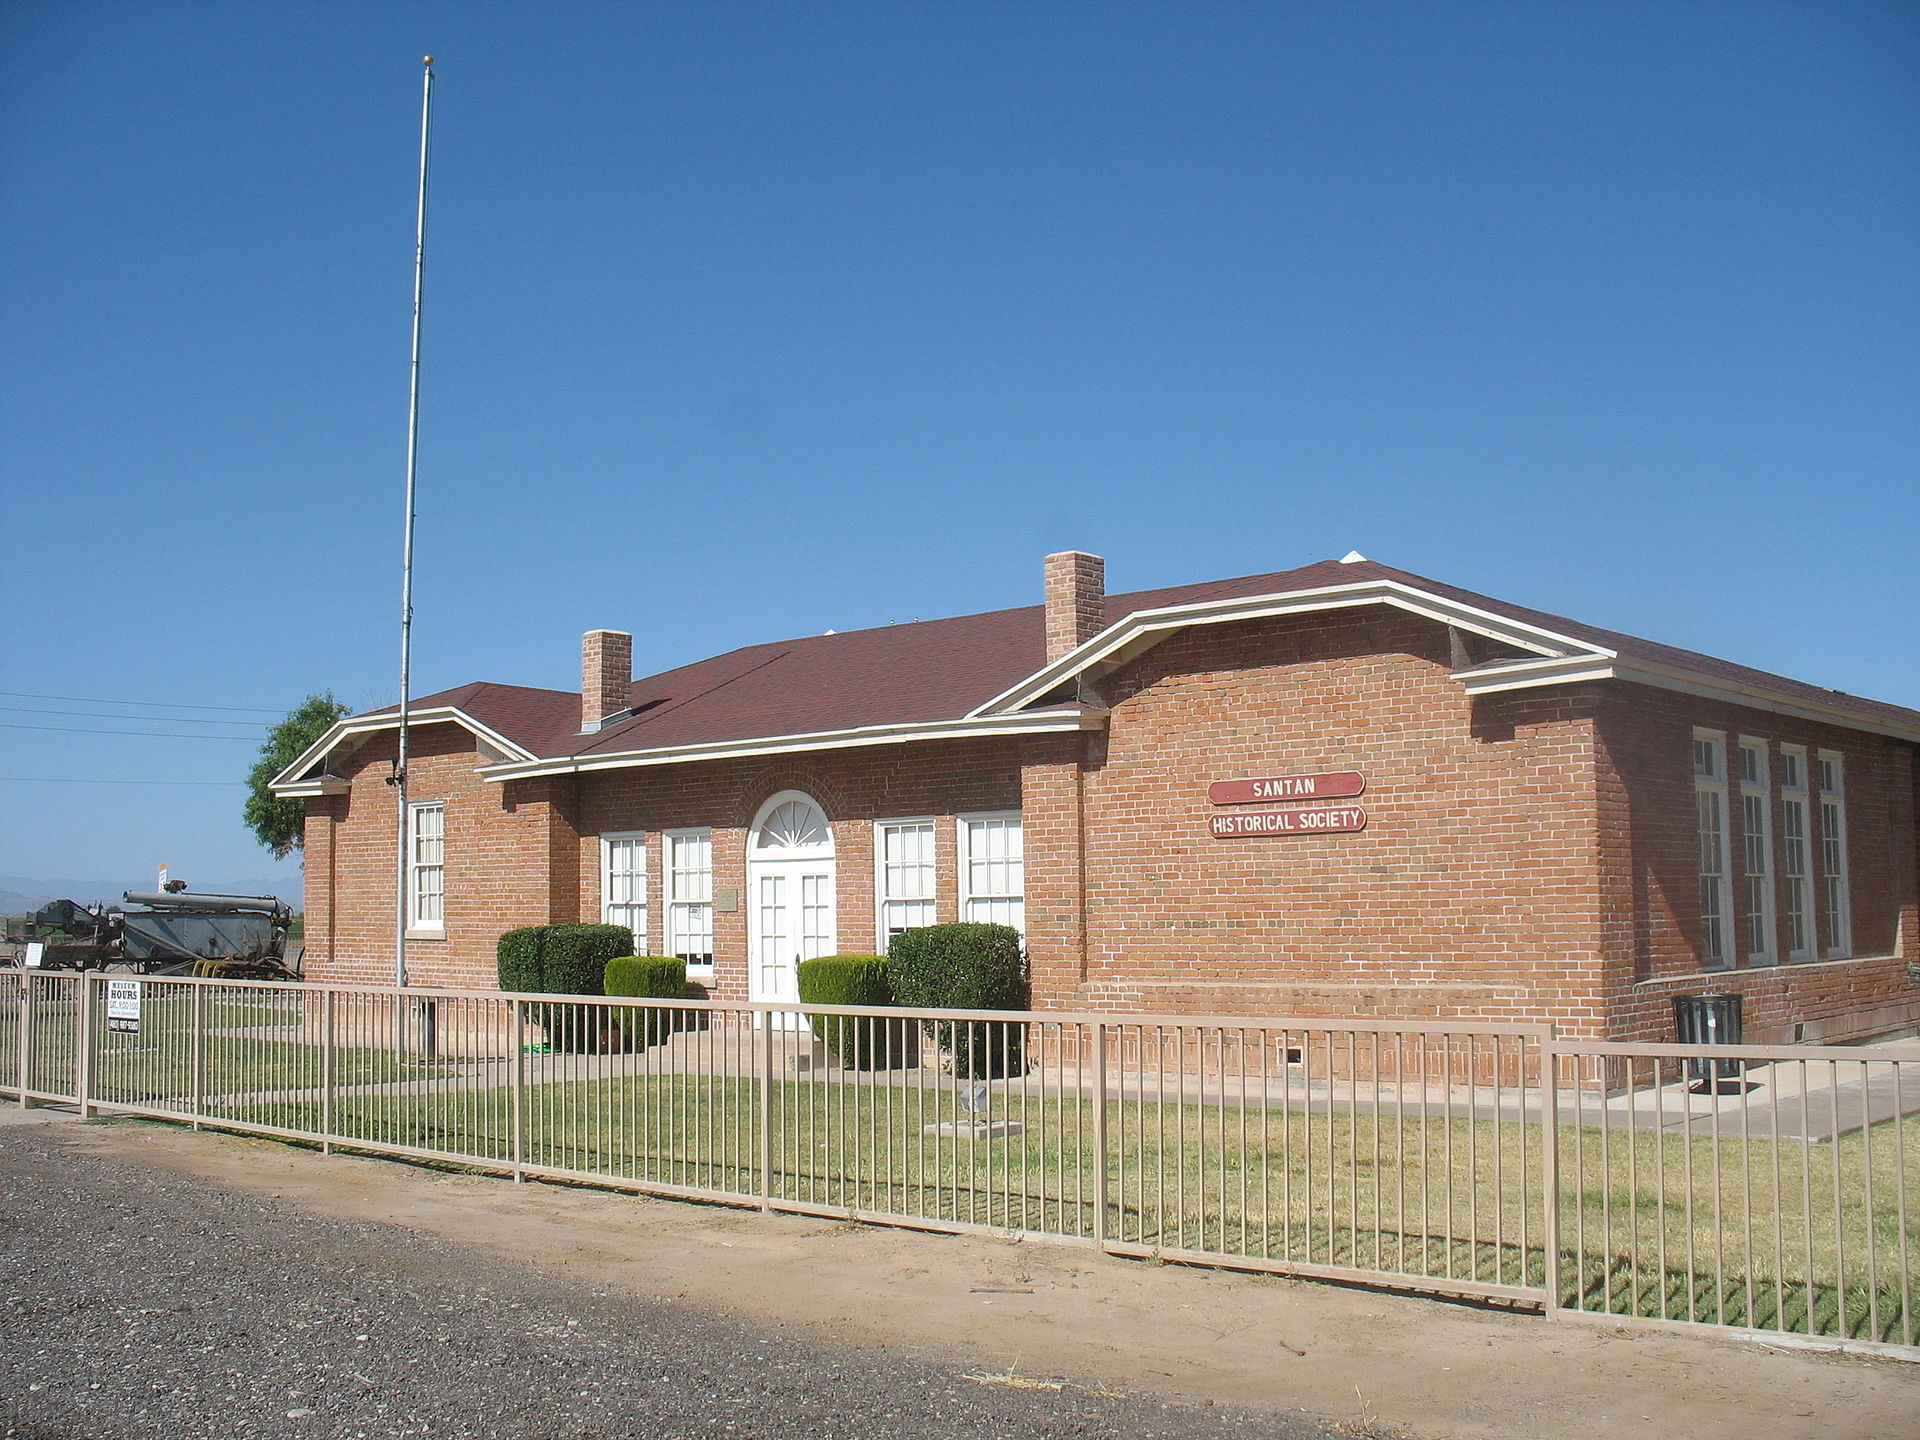 Rittenhouse Elementary/San Tan Historical Society and Museum as it looks today